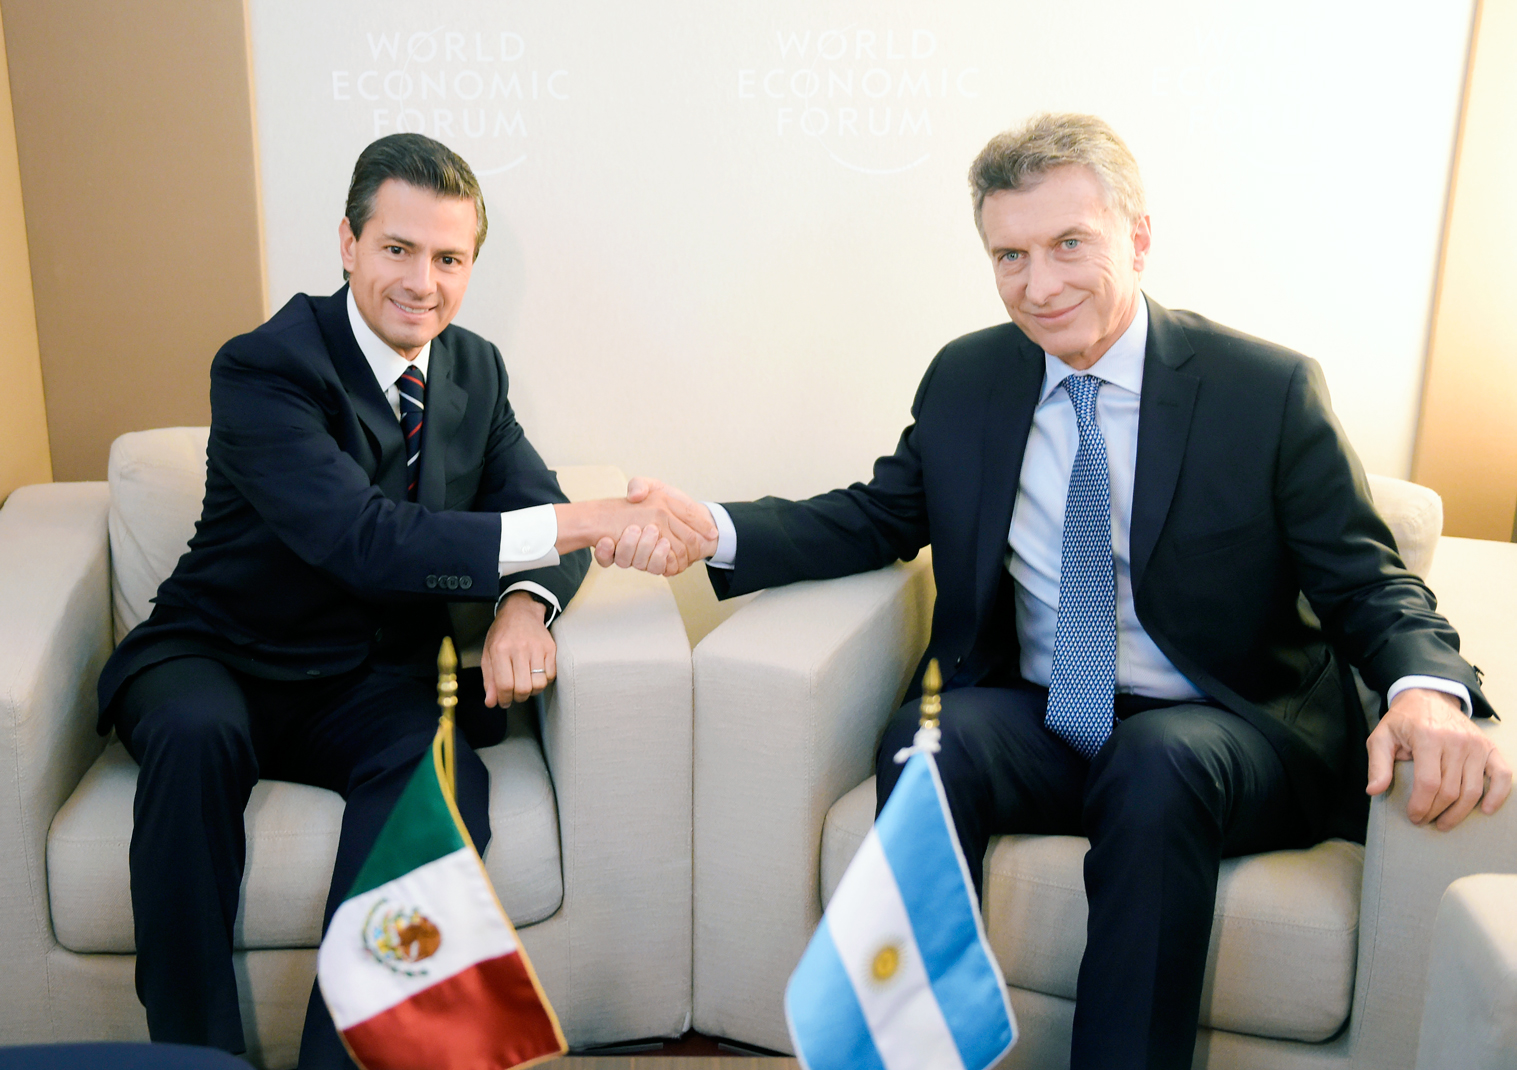 This is the first meeting between the two heads of state since Macri became president of Argentina on December 10, 2015.